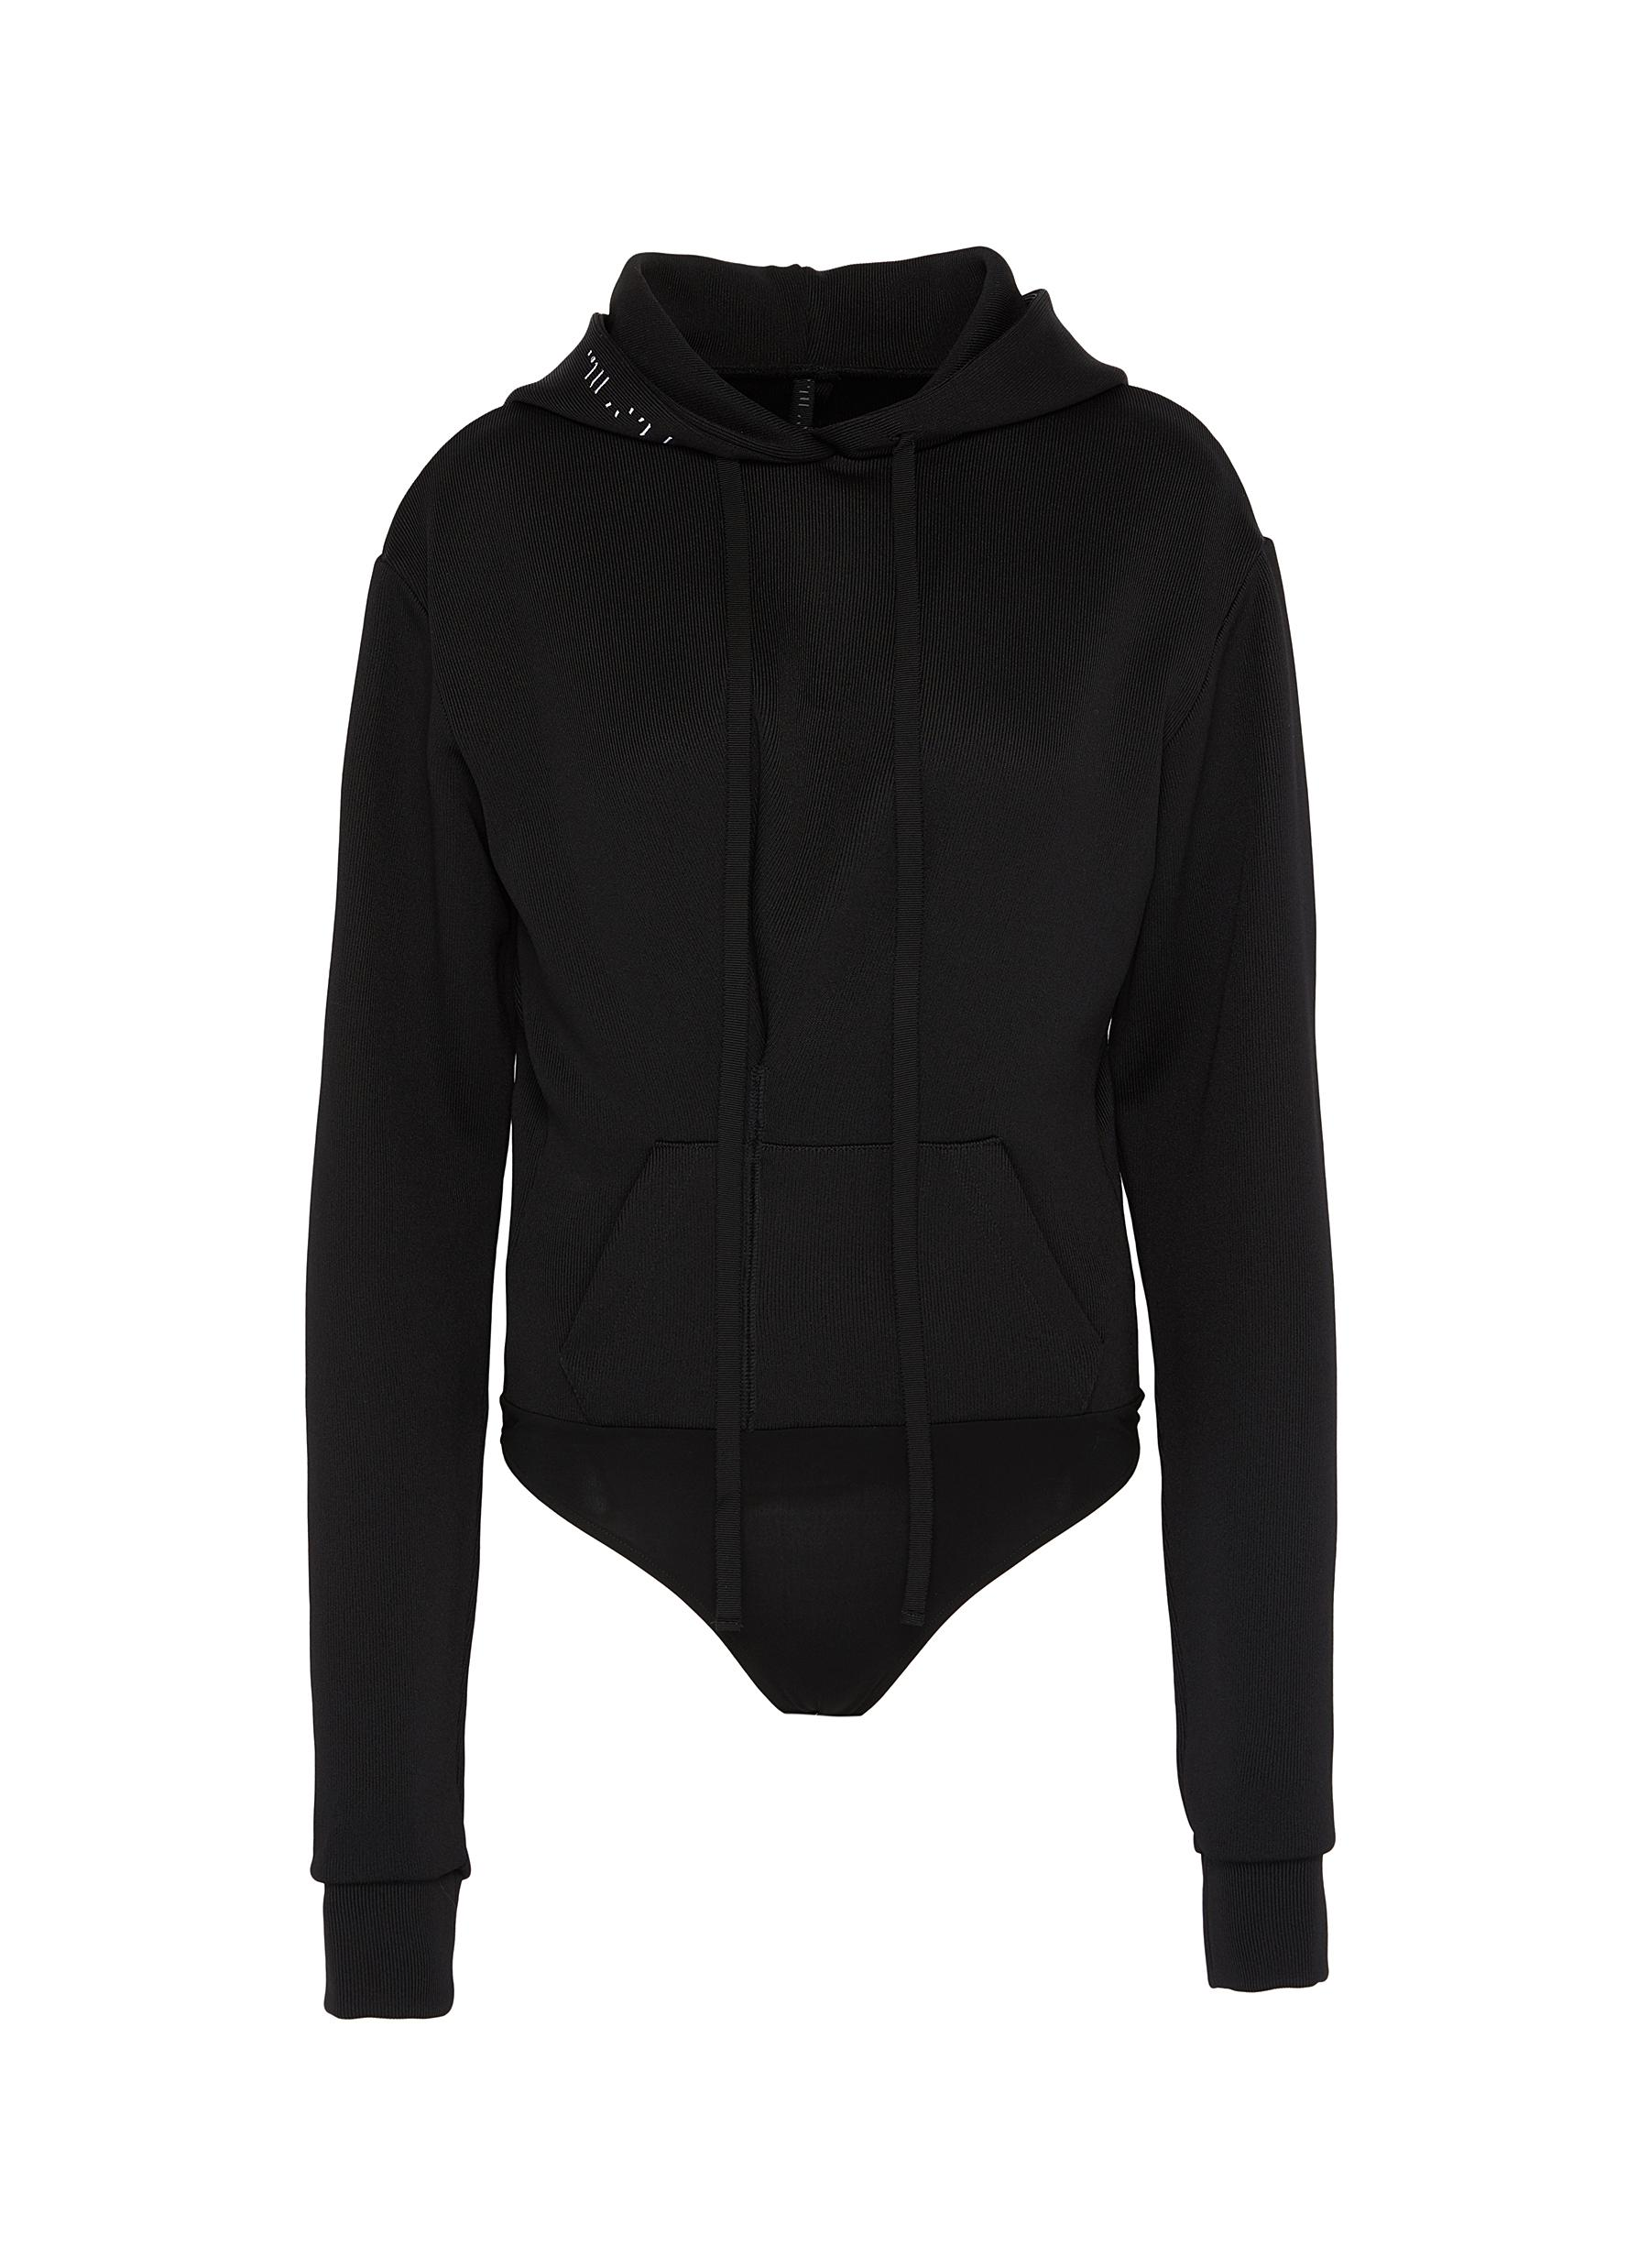 Cropped hoodie by Ben Taverniti Unravel Project